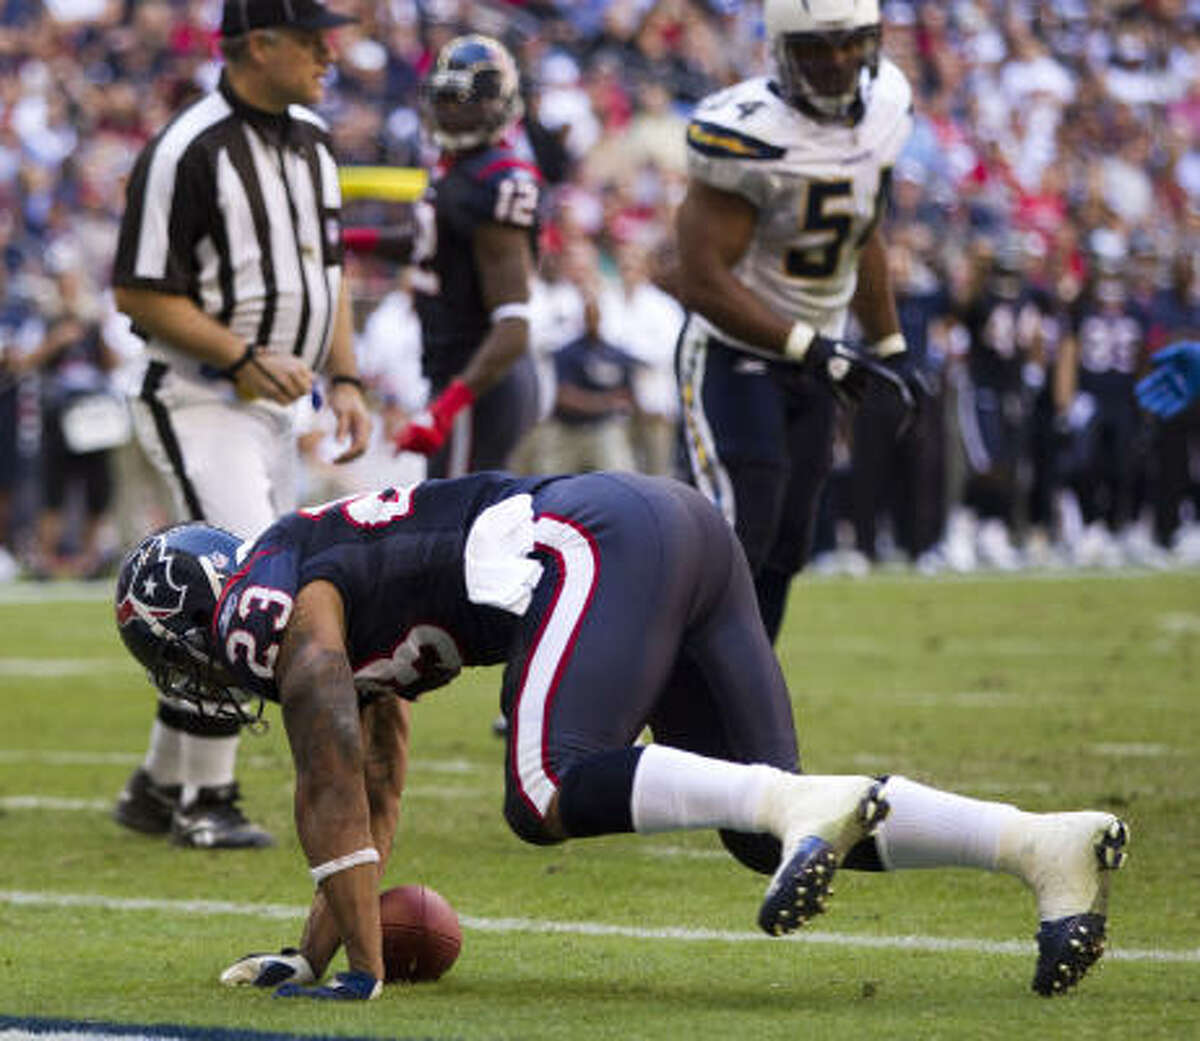 Nov. 7: Chargers 29, Texans 23 Texans running back Arian Foster (23) loses the handle on the football after crossing the goal line for an apparent touchdown. After a review of the play, it was ruled that Foster lost control of the ball as he came down in the end zone for an incomplete pass.